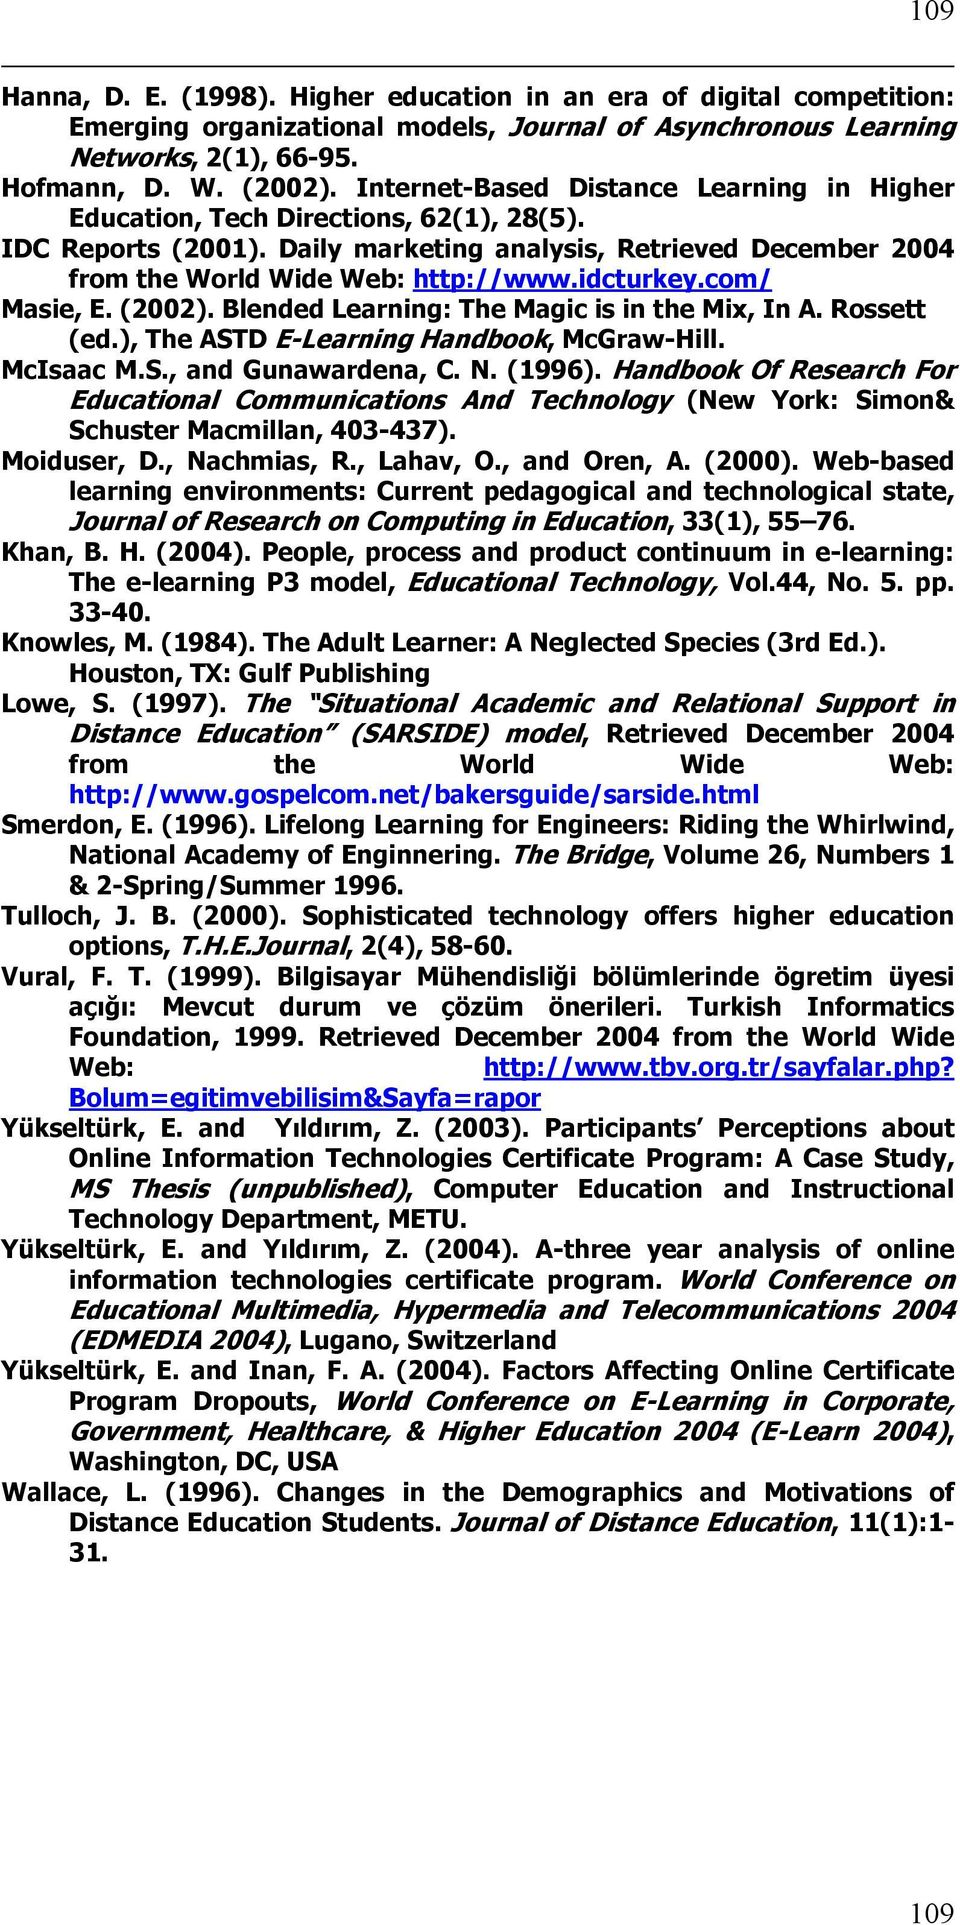 idcturkey.com/ Masie, E. (2002). Blended Learning: The Magic is in the Mix, In A. Rossett (ed.), The ASTD E-Learning Handbook, McGraw-Hill. McIsaac M.S., and Gunawardena, C. N. (1996).